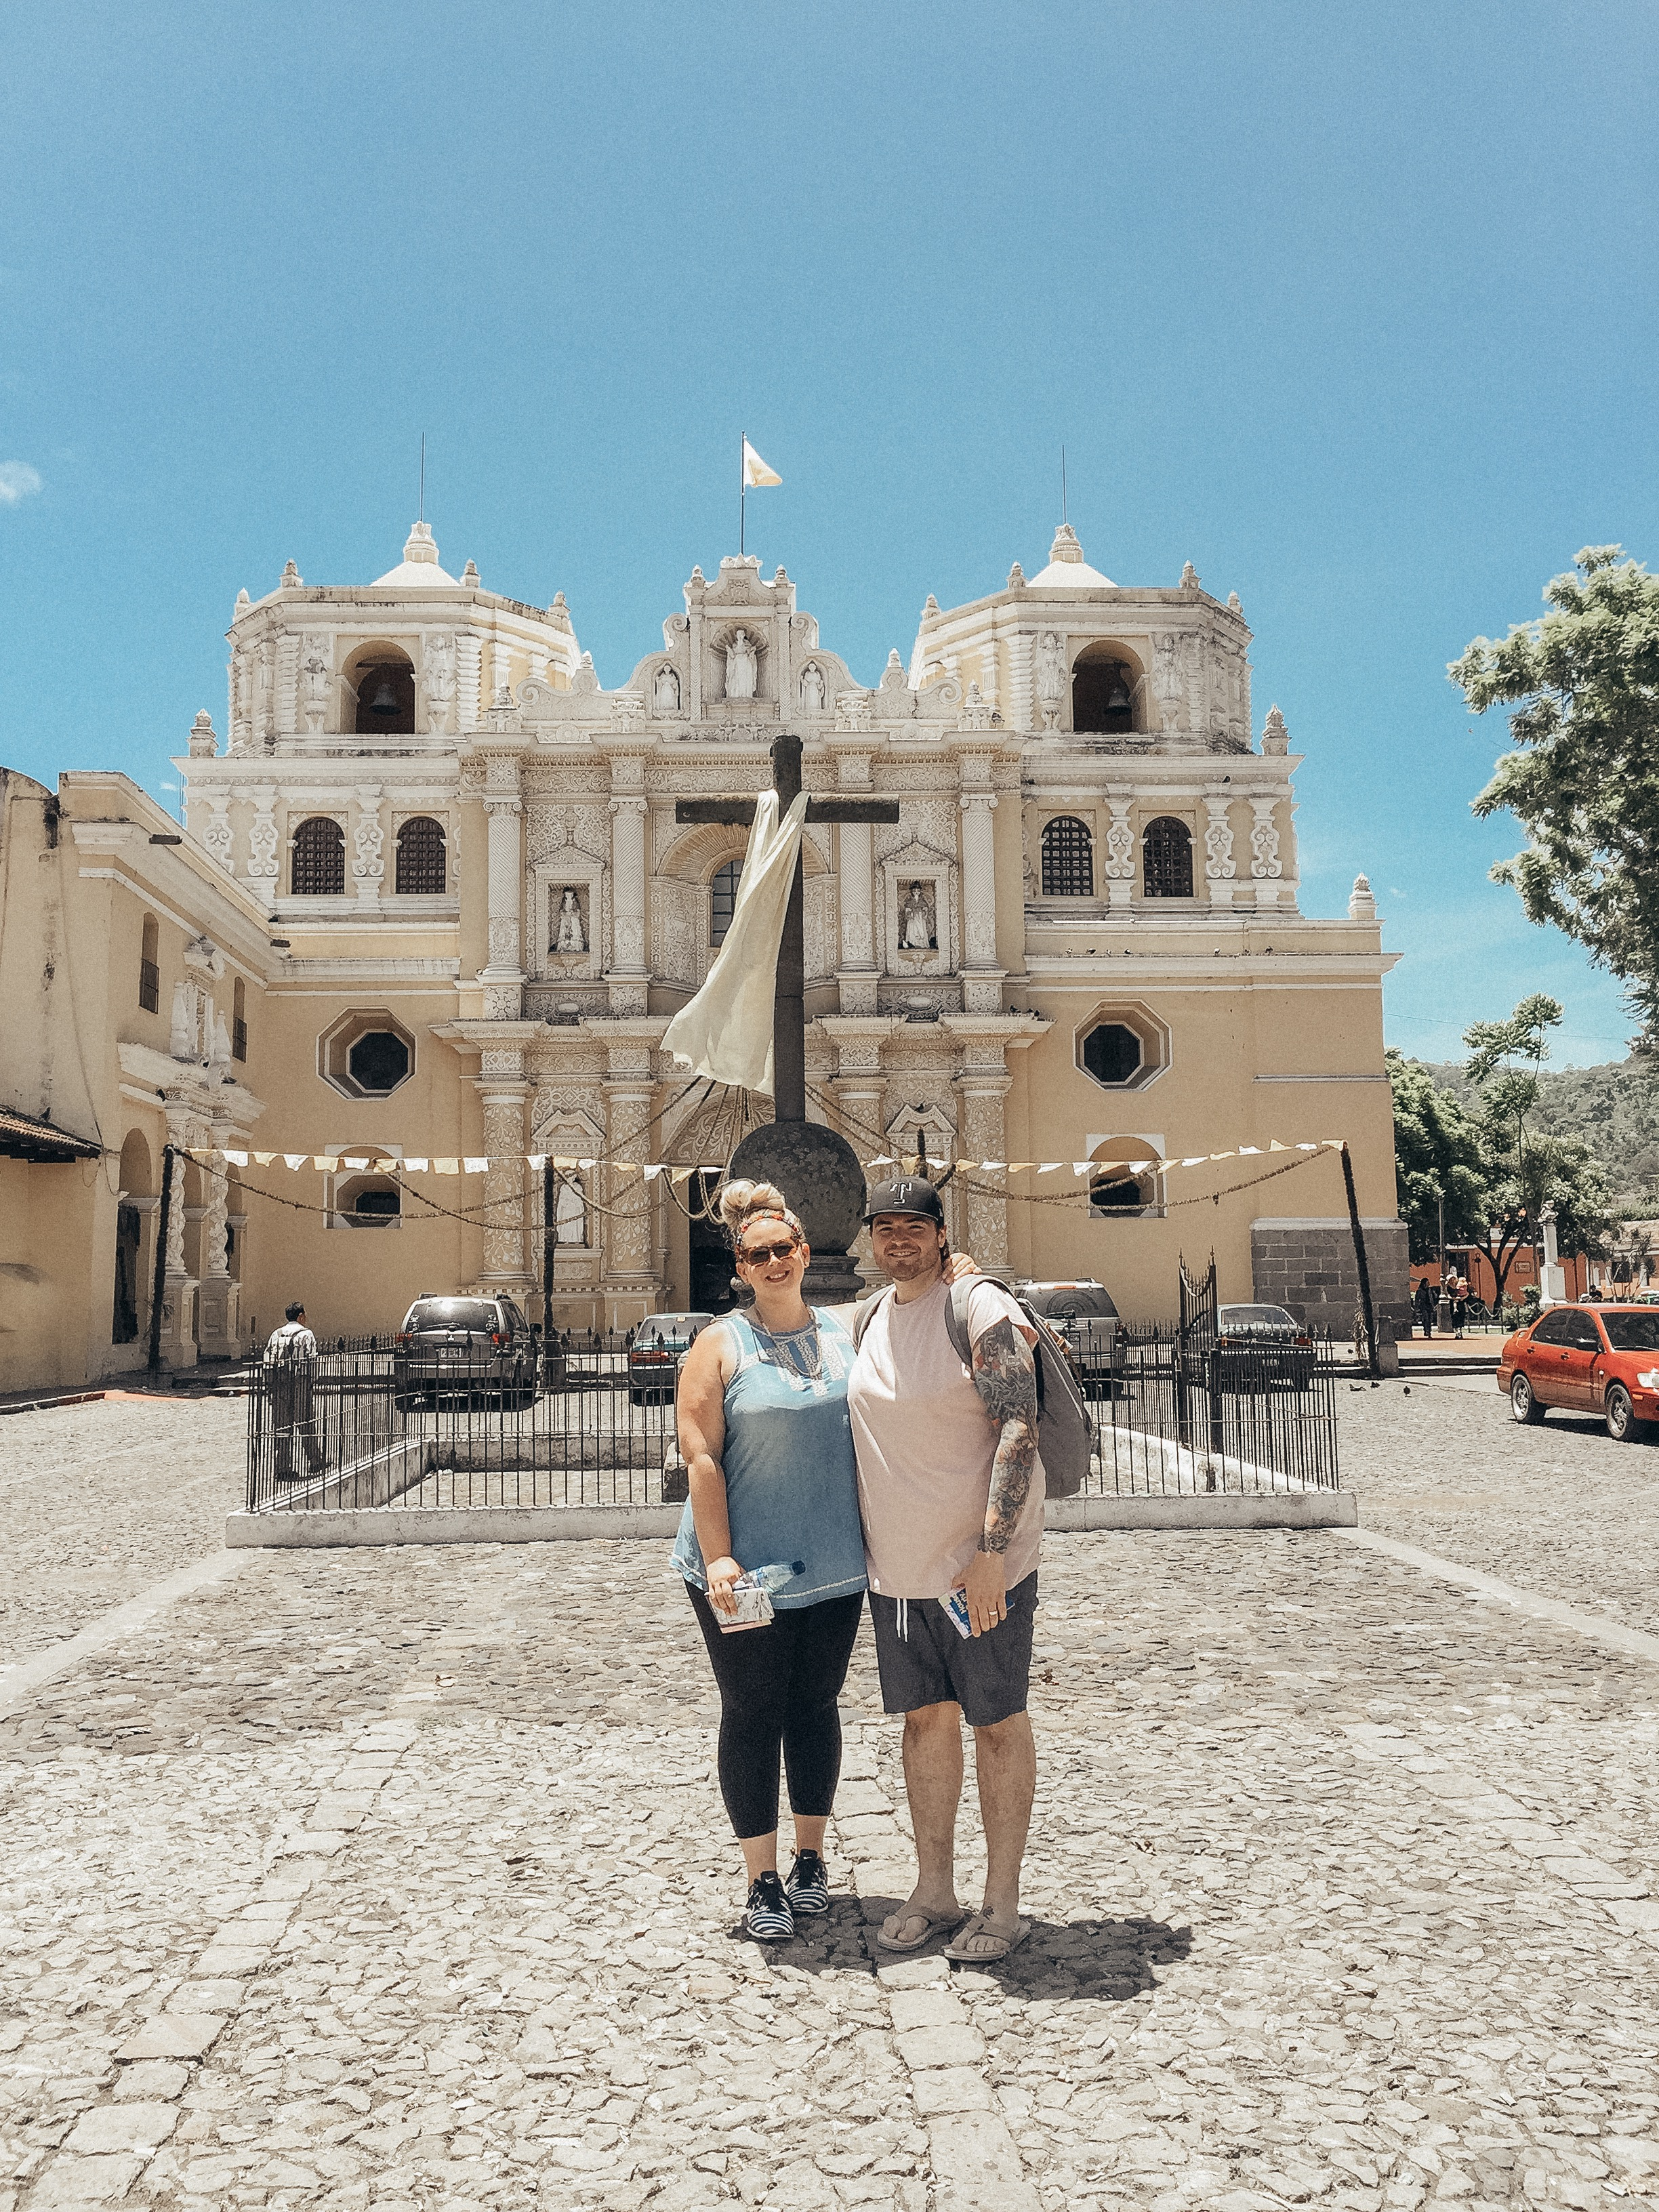 K and me on a mission trip in Antigua, Guatemala in 2016